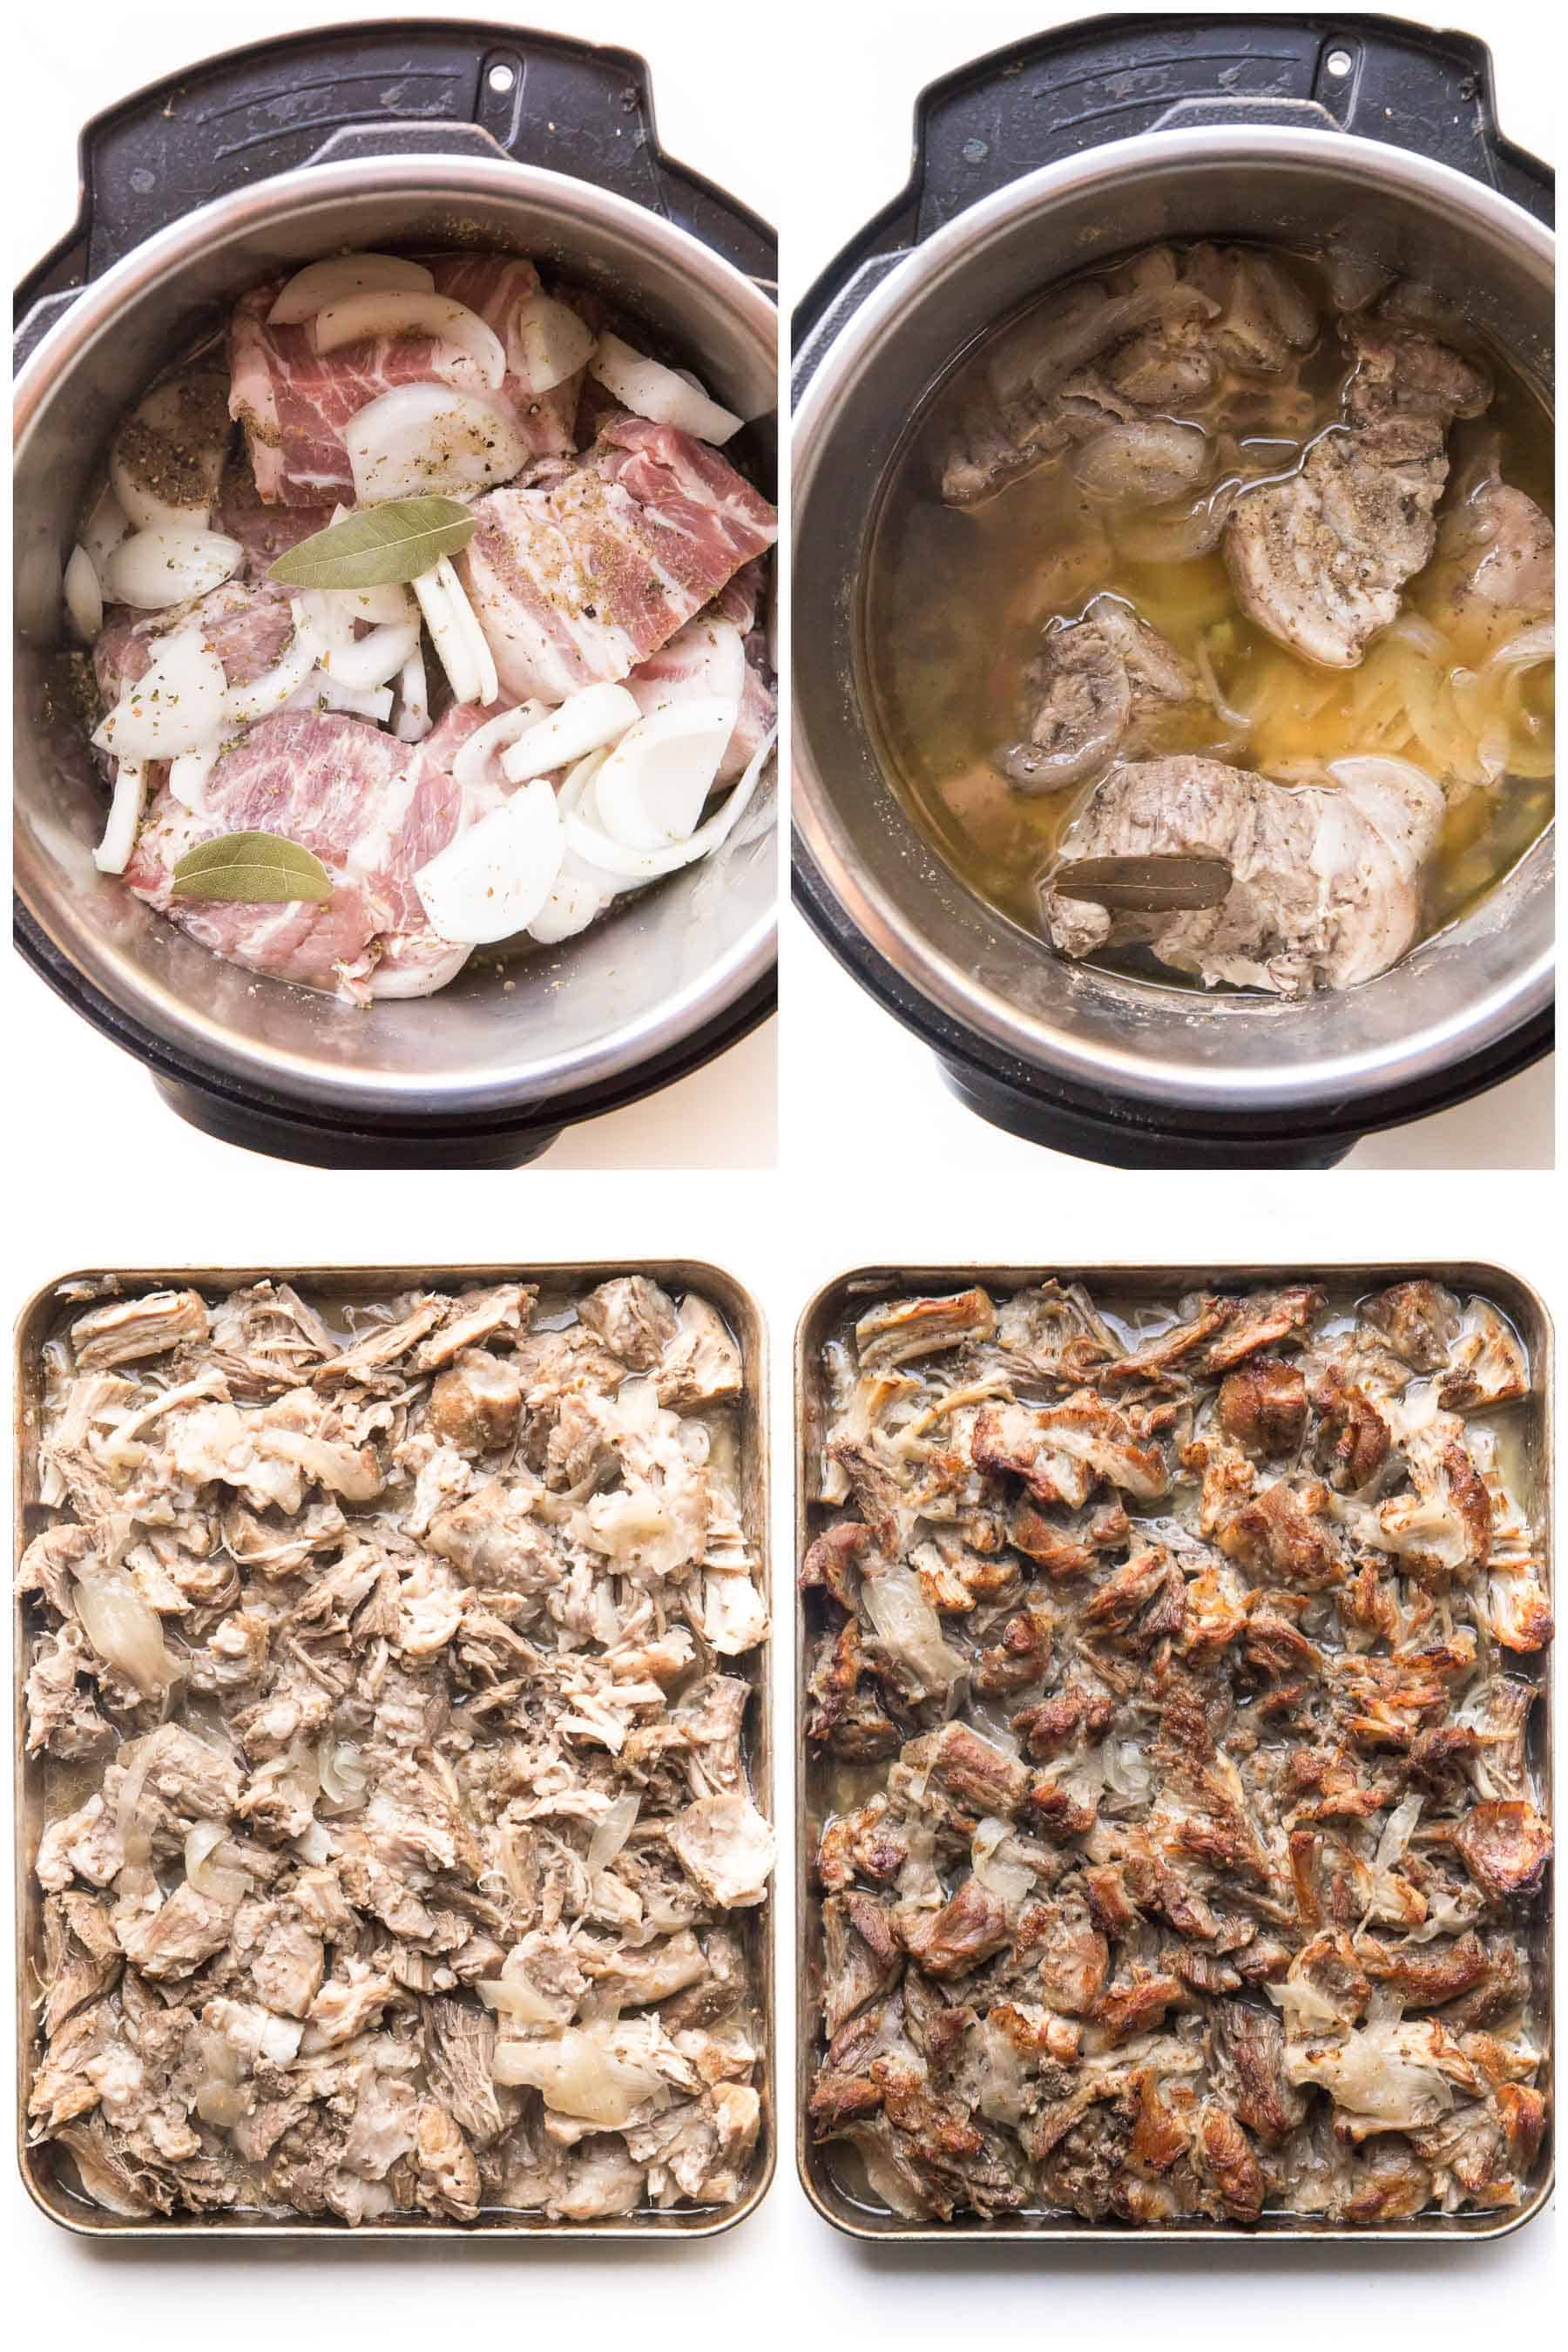 steps to making carnitas in an instant pot